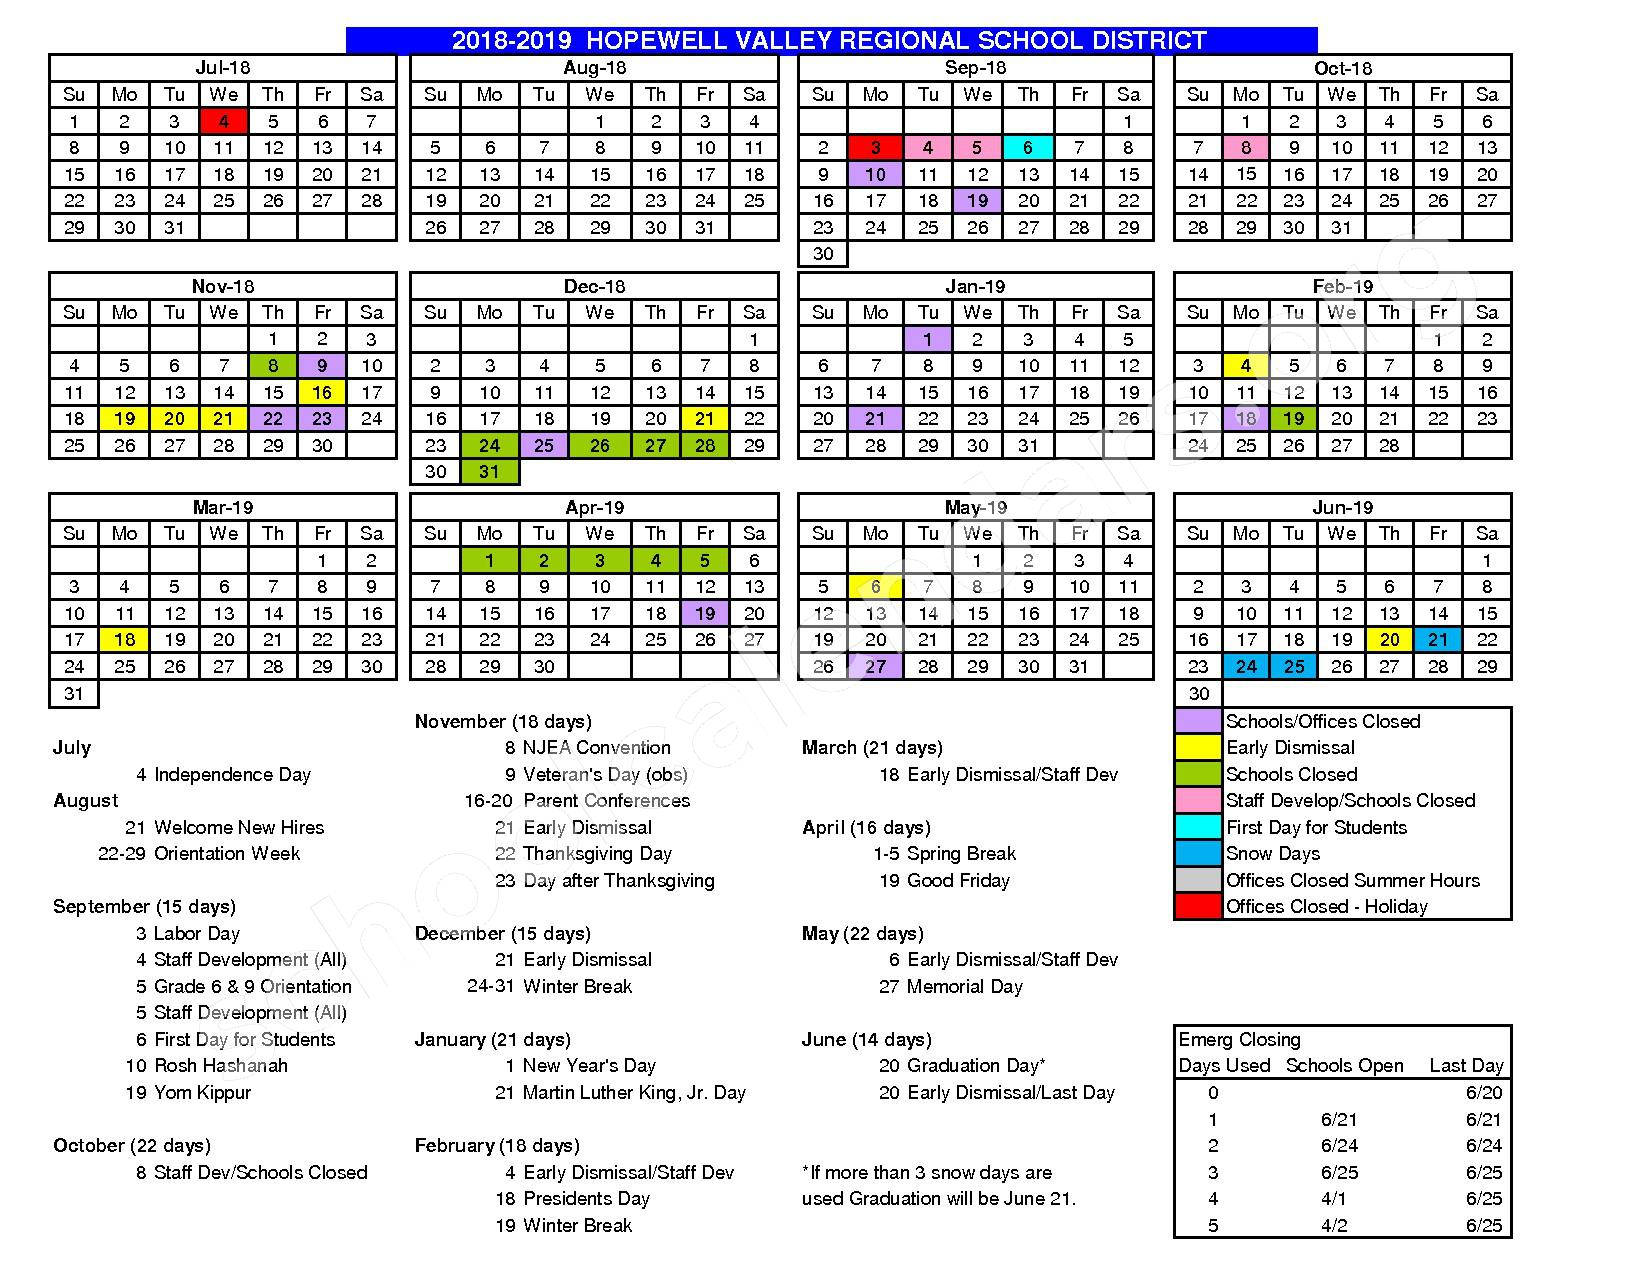 2016 - 2017 School Calendar – Hopewell Valley Regional School District – page 3